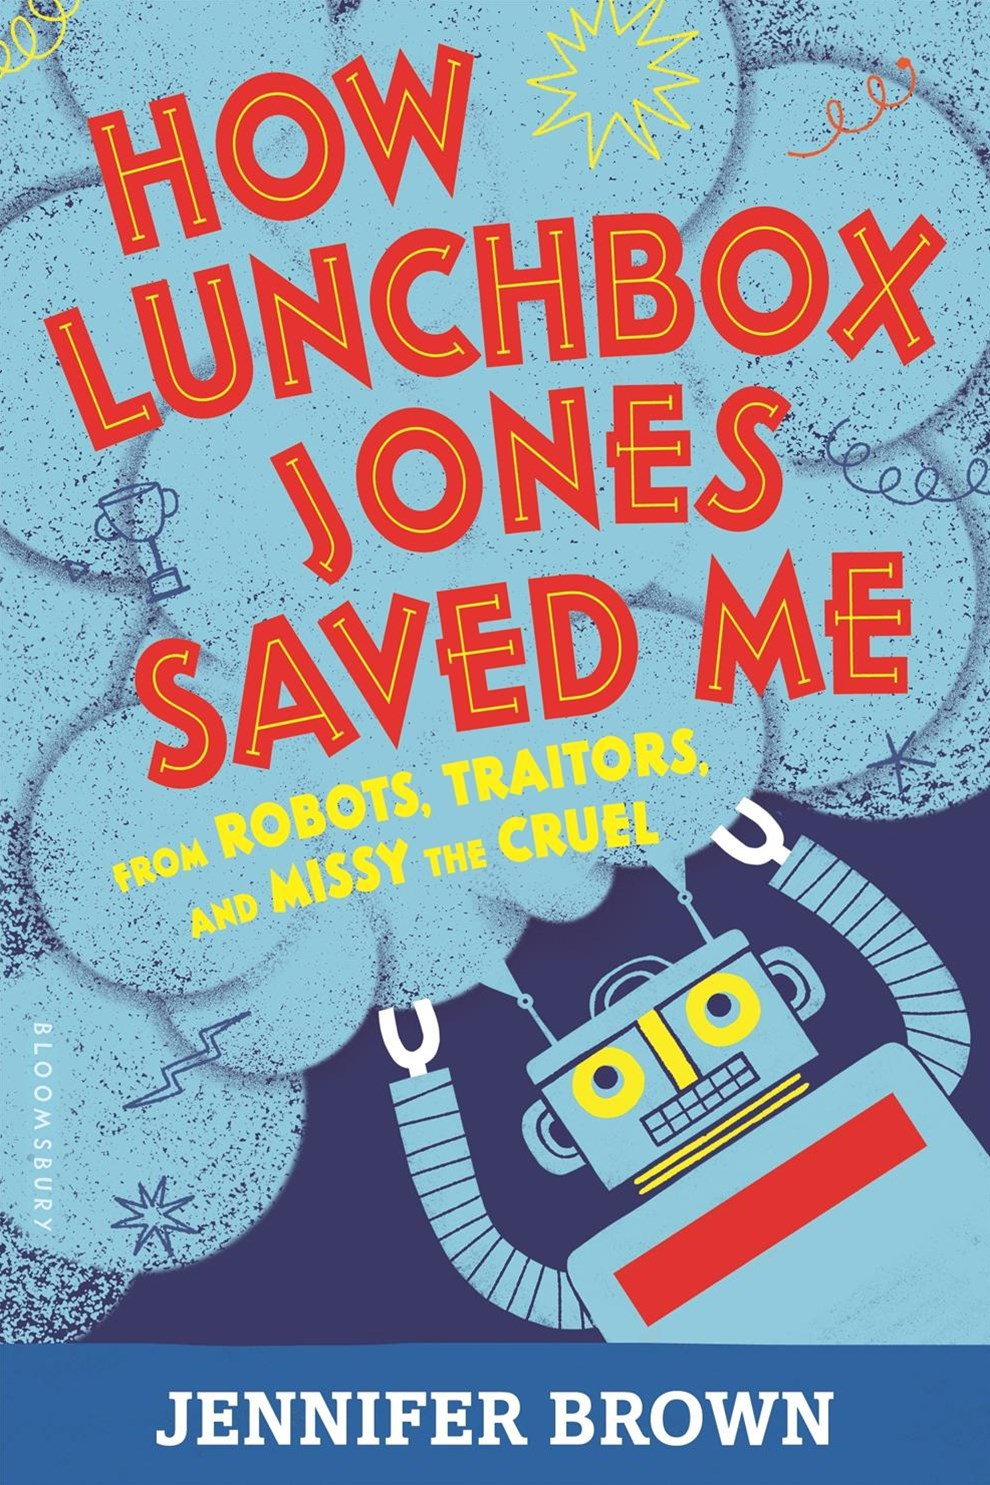 How Lunchbox Jones Saved Me from Robots,